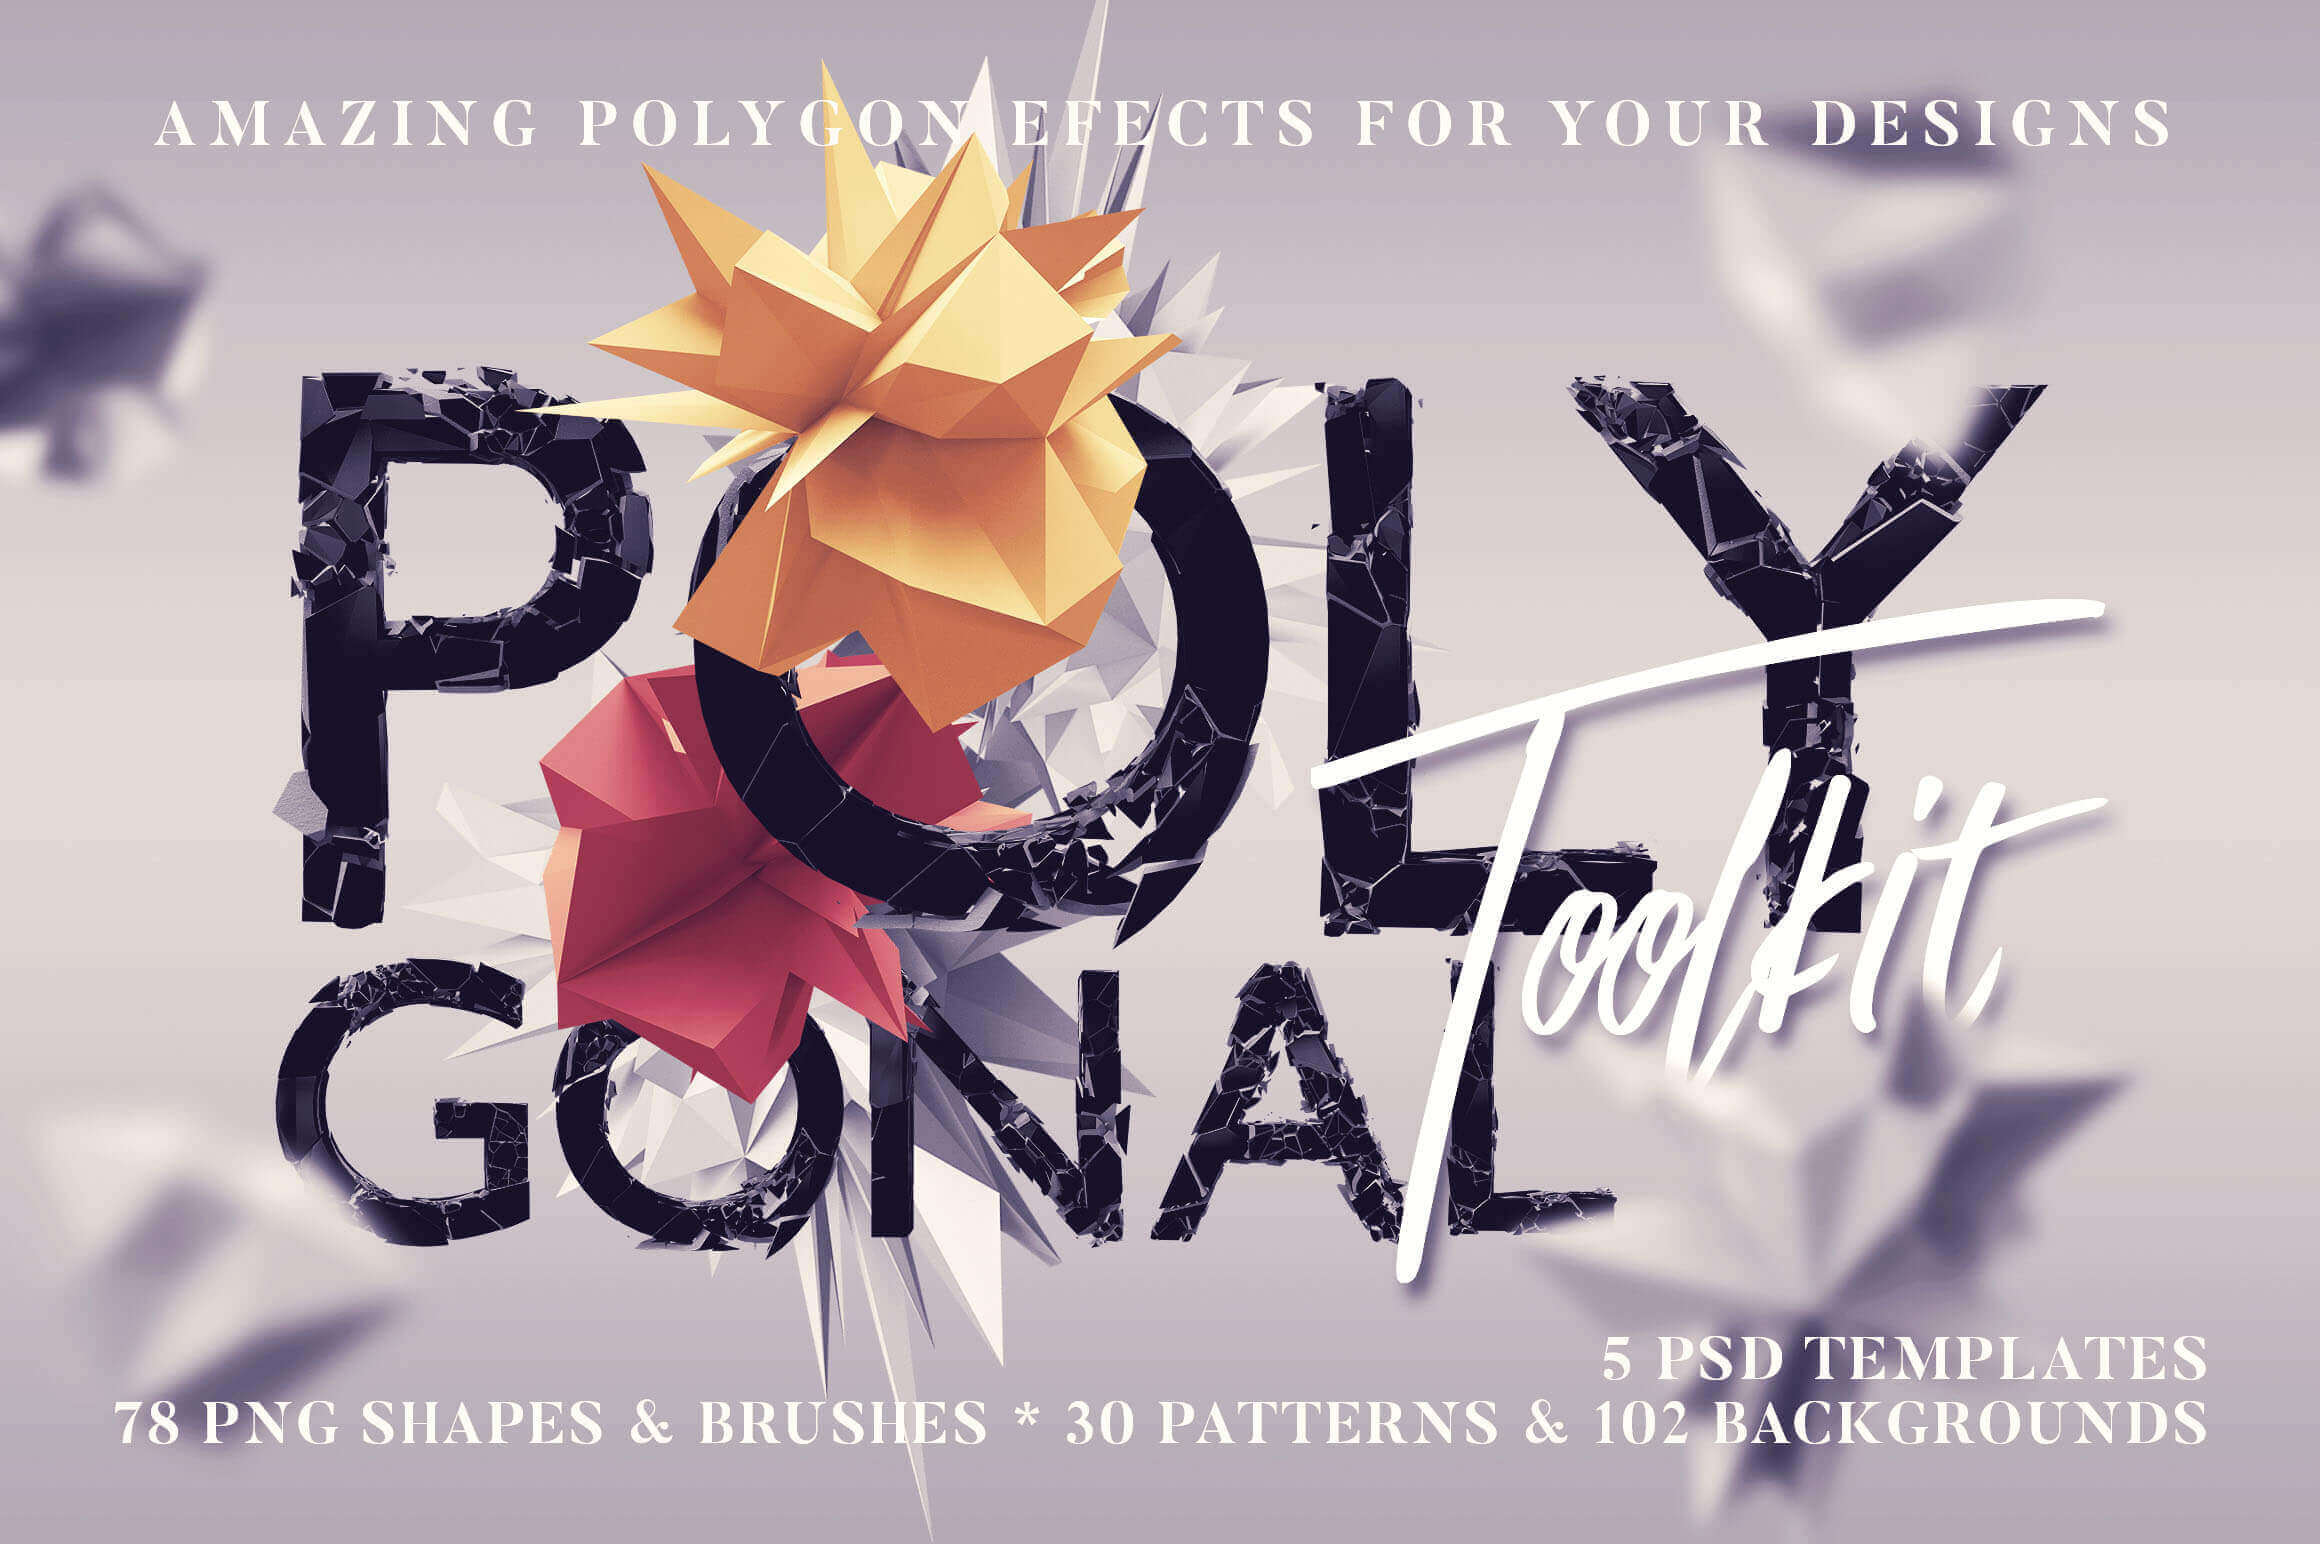 250+ Polygonal Shapes, Brushes, Backgrounds & Patterns – only $12!